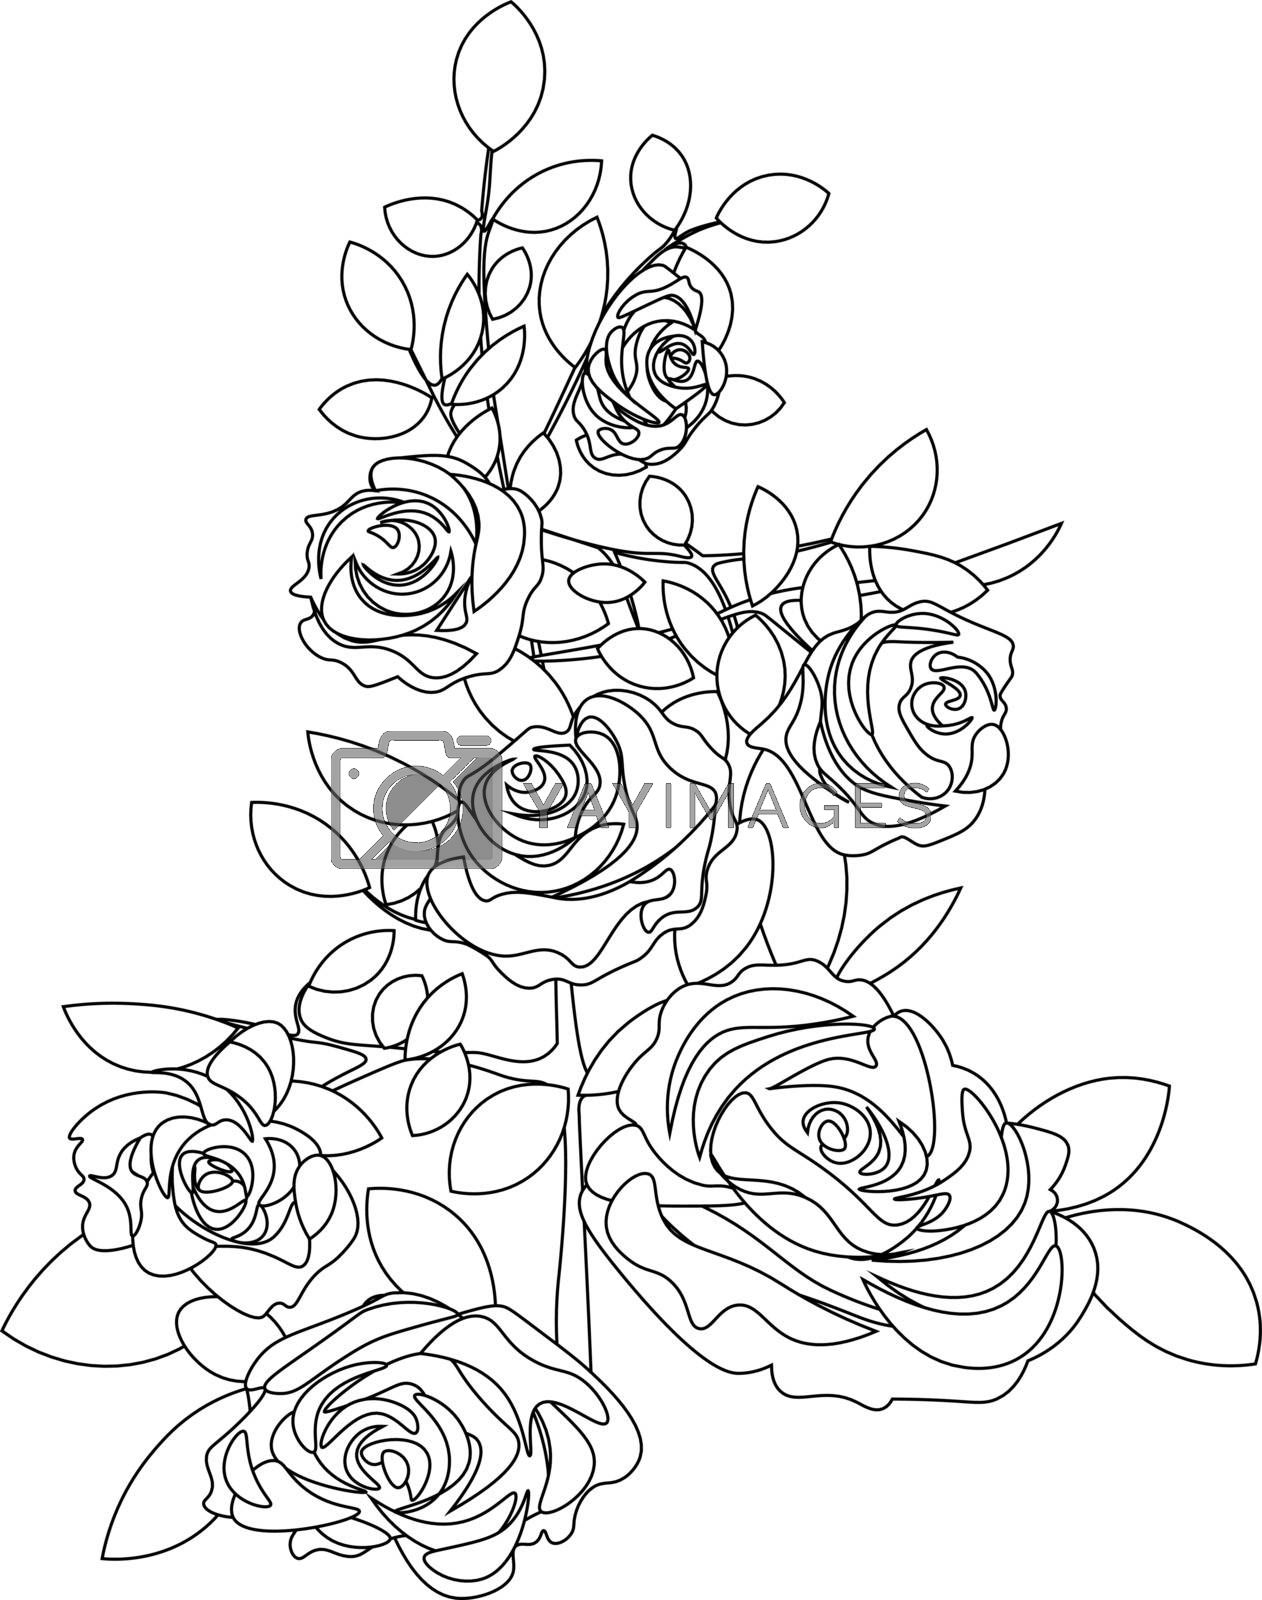 isolated simple flat line art of rose bouquet for tattoo or print